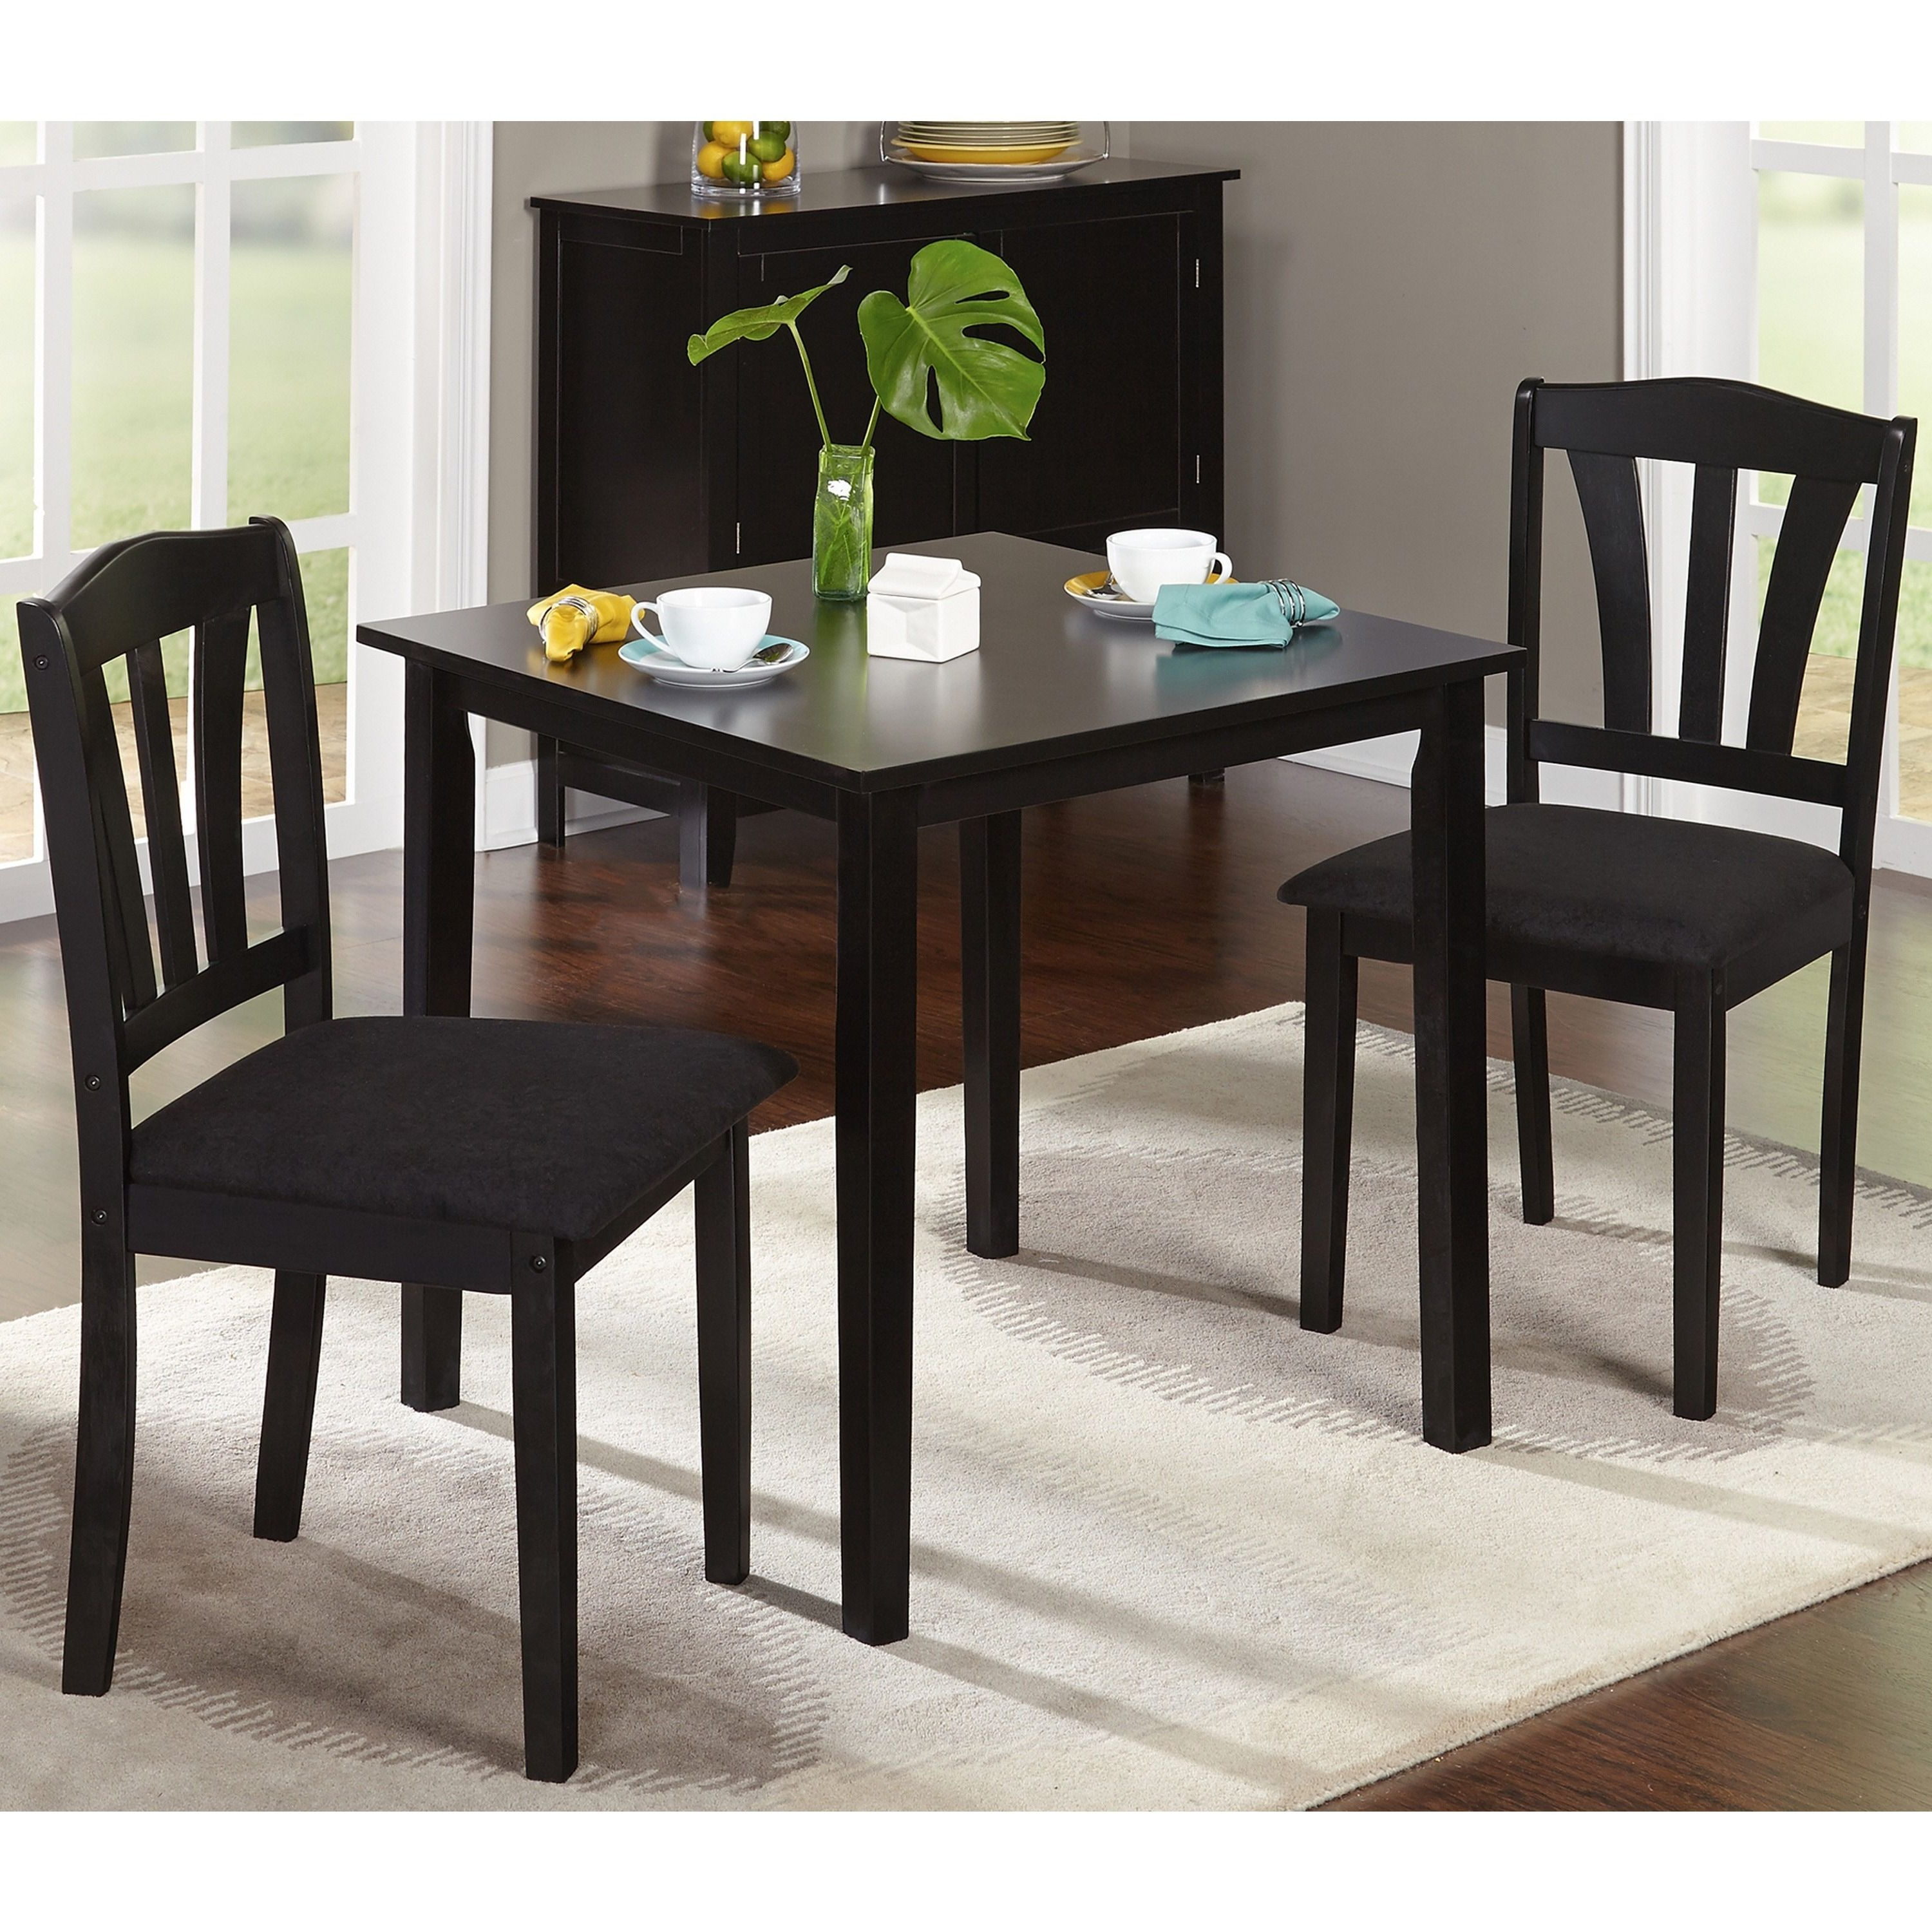 Porch & Den Third Ward Michigan 3 Piece Dining Set (Black Wood For Widely Used Baillie 3 Piece Dining Sets (View 2 of 25)